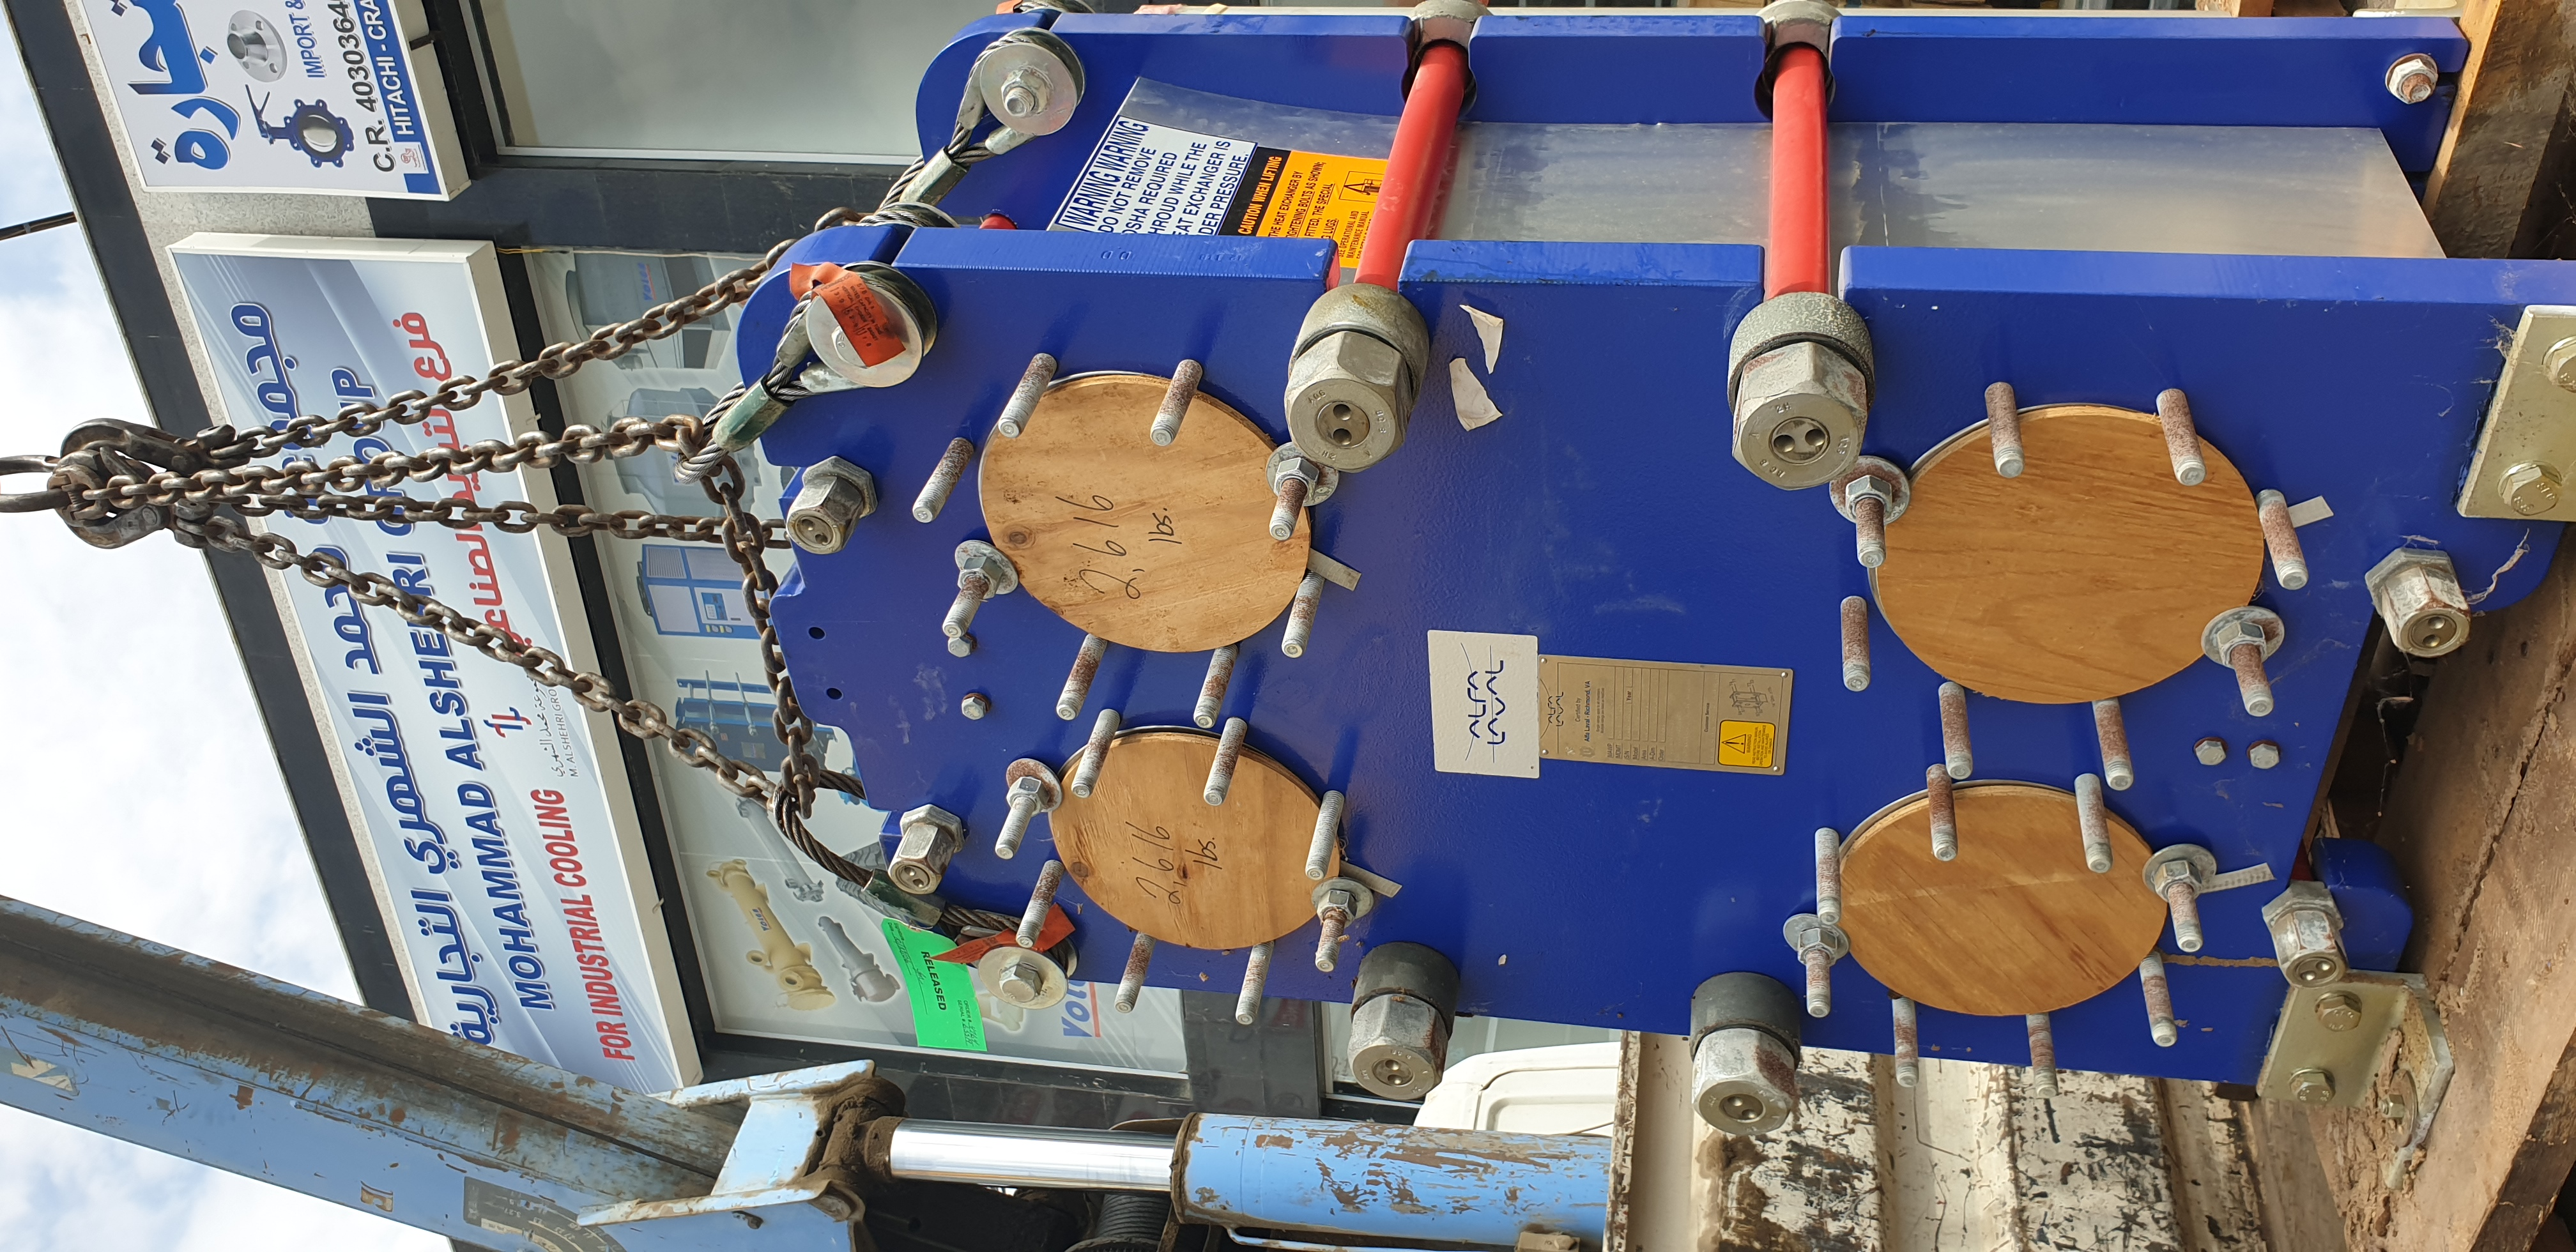 Supply And Installation Heat Exchanger <i class='fa fa-long-arrow-right color'></i>